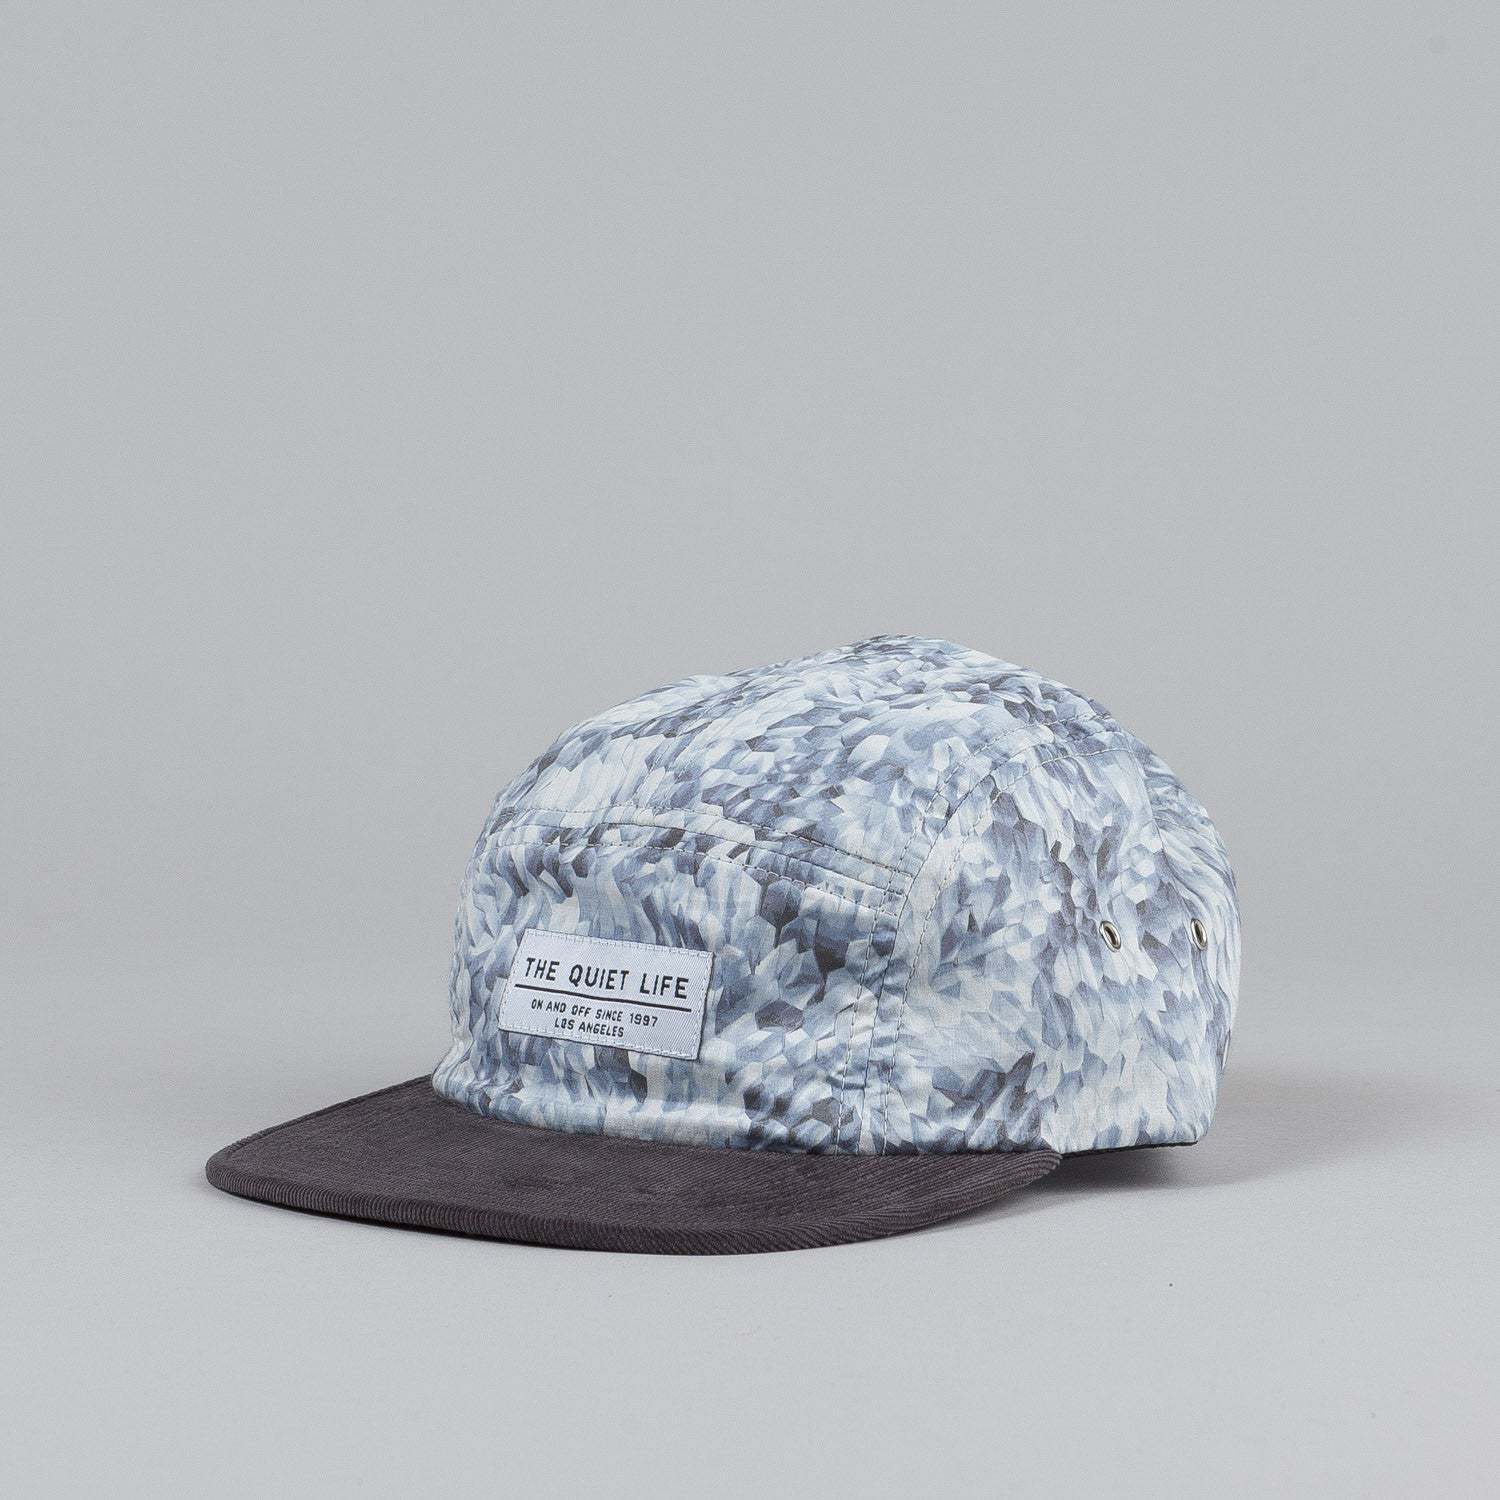 The Quiet Life Crystal 5 Panel Cap Grey Cord Bill